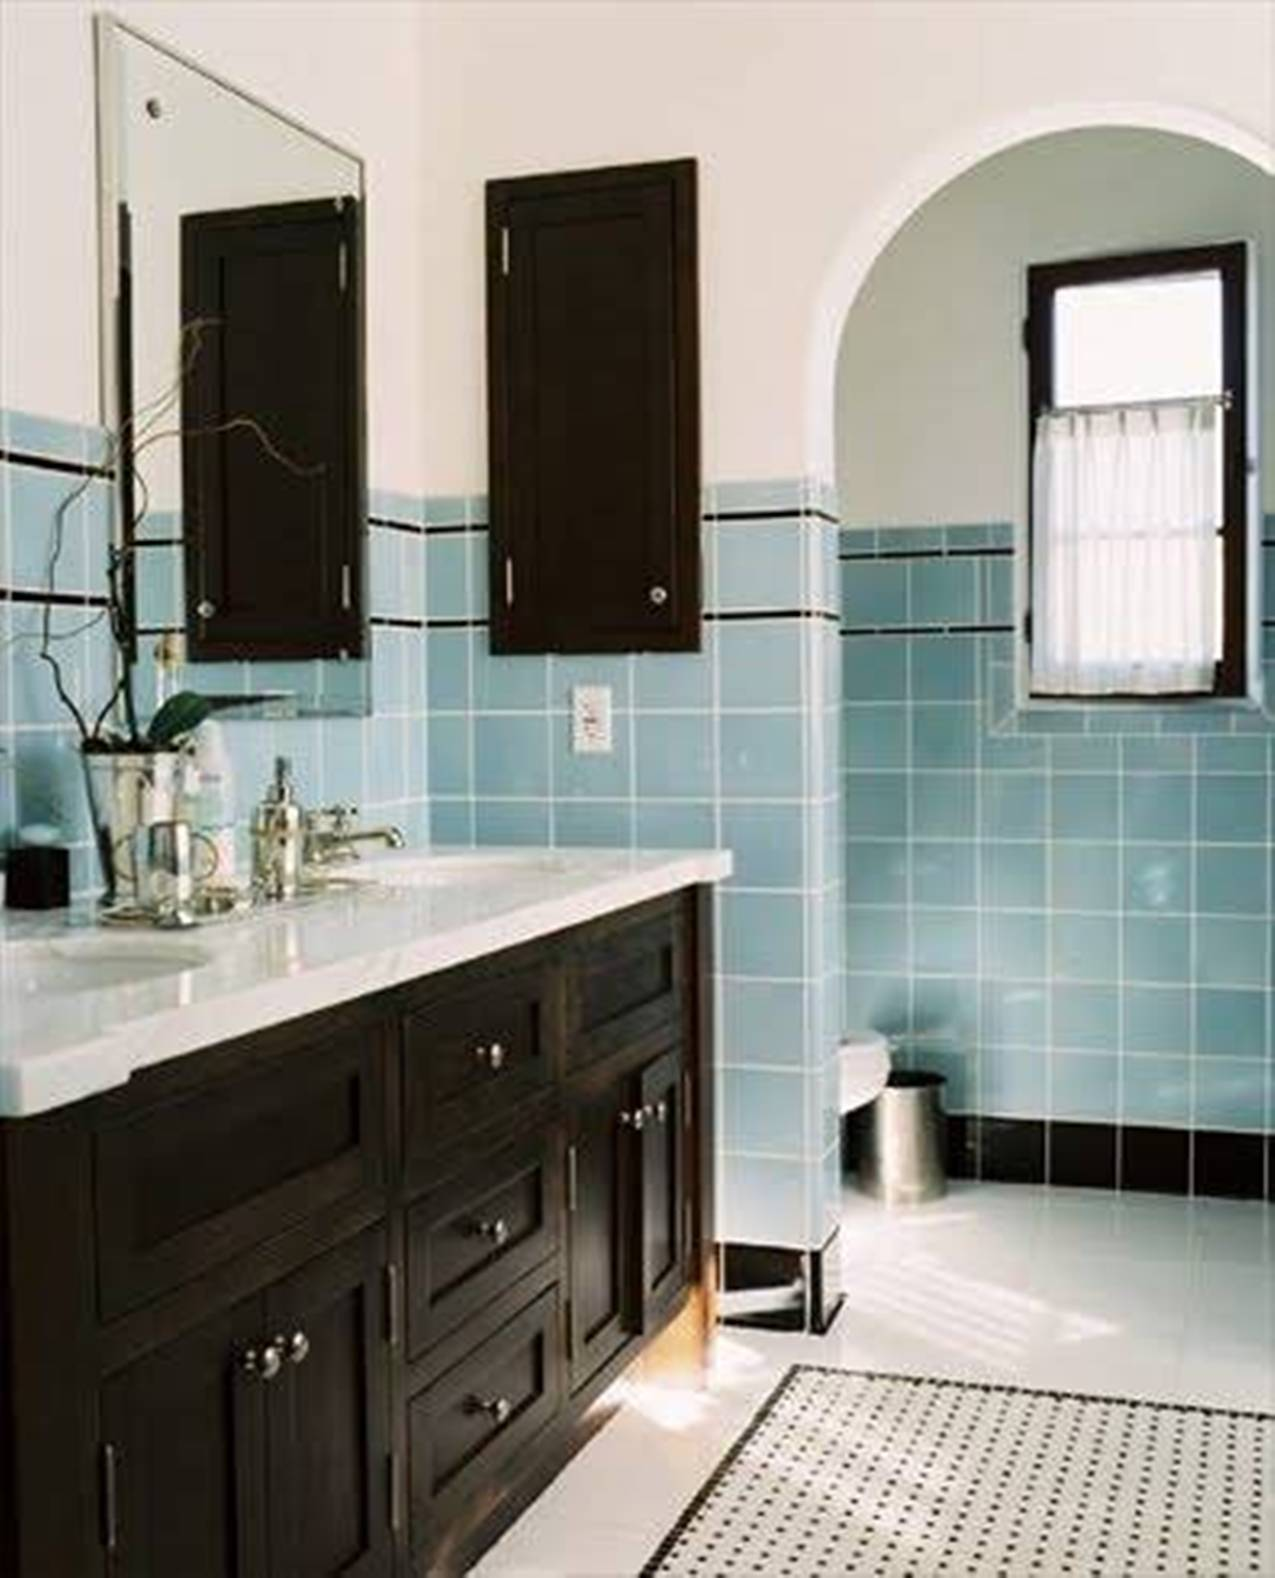 45 magnificent pictures of retro bathroom tile design ideas on vintage bathroom cabinets, vintage marble bathroom designs, country bath designs, vintage blue bathroom designs, vintage bathroom remodeling ideas,